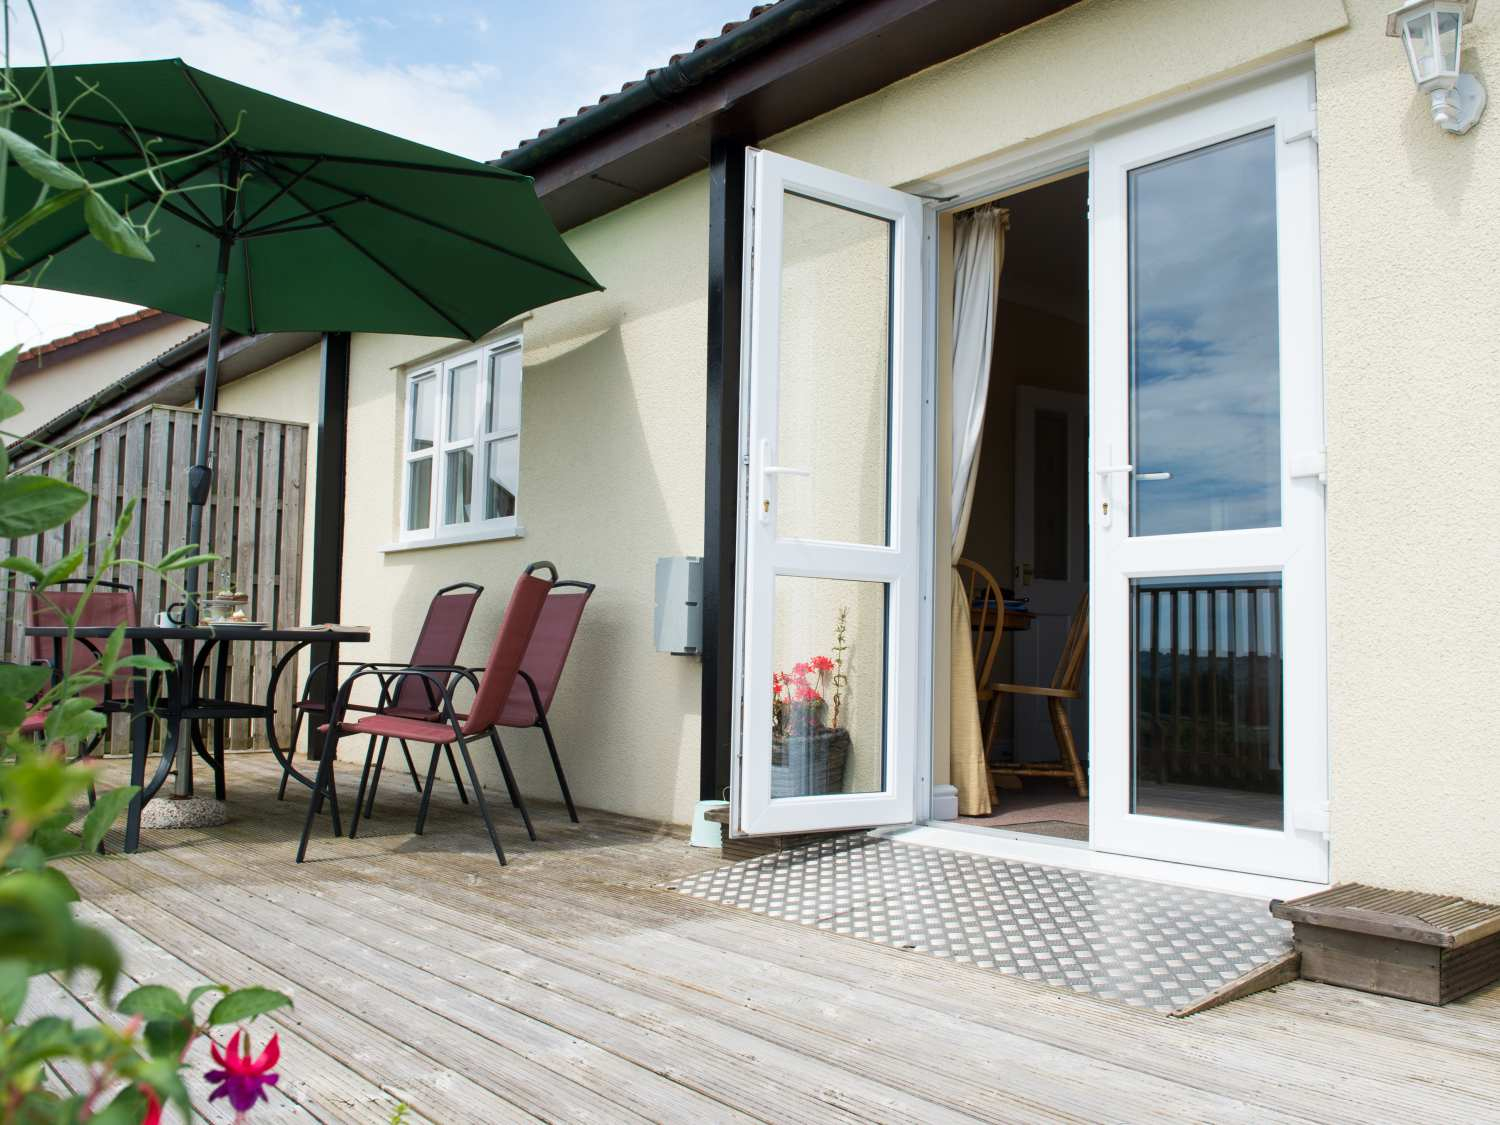 Greenfields in Upottery near Honiton - sleeps 4 people